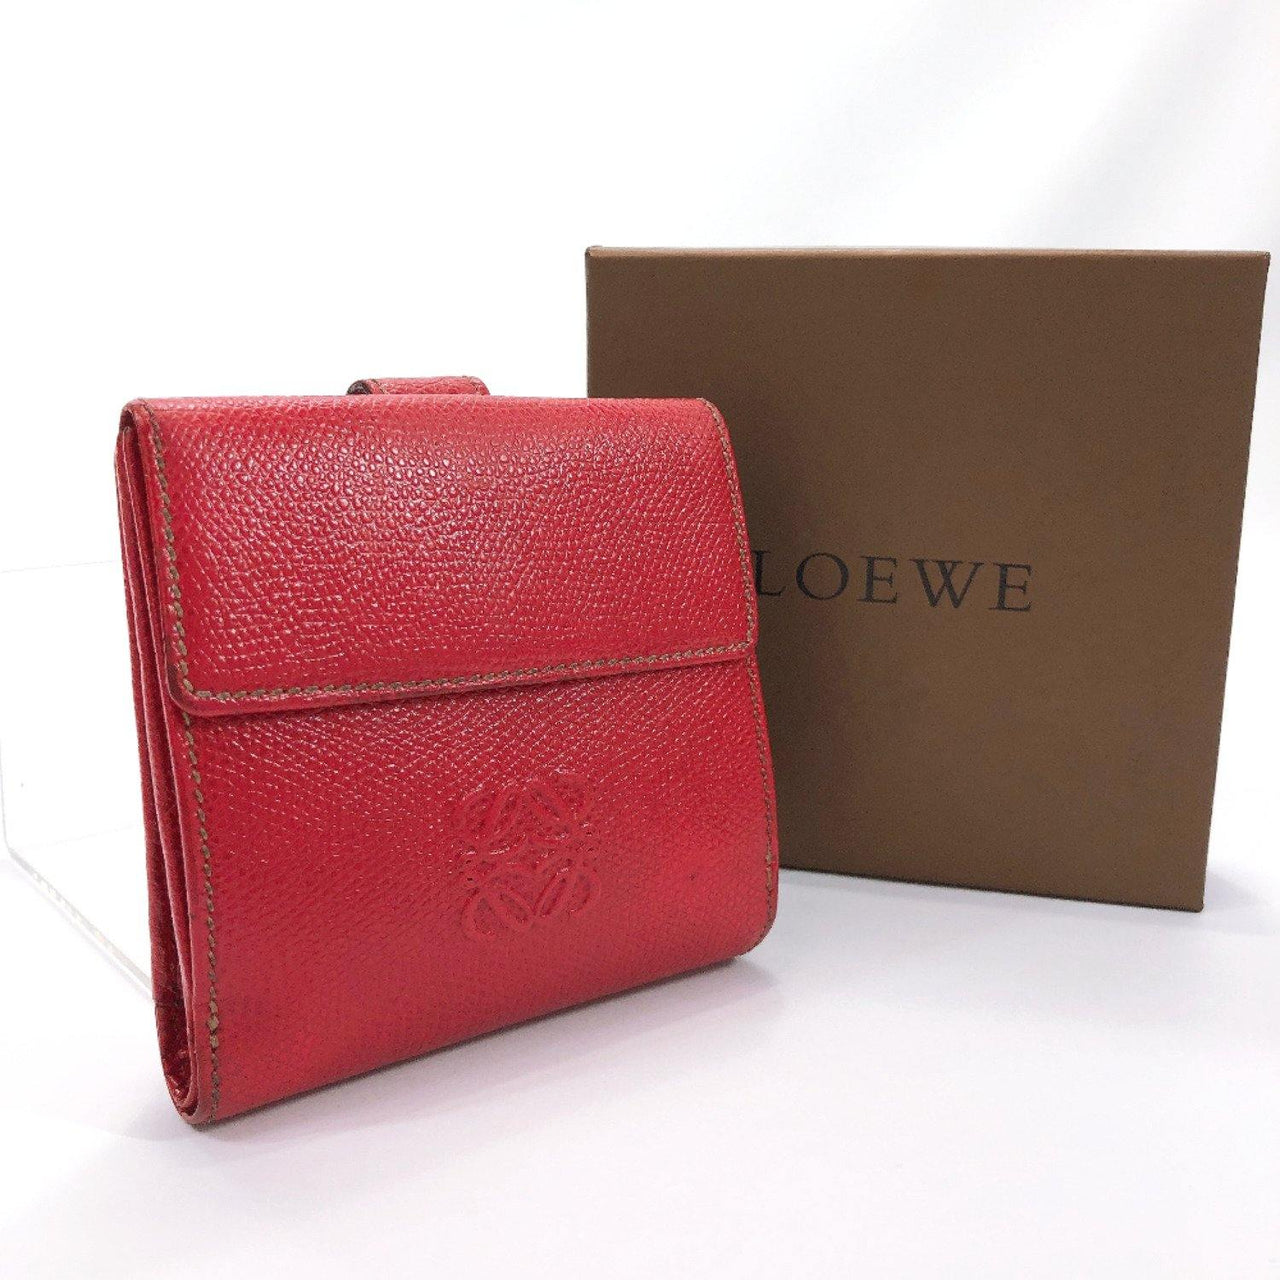 LOEWE wallet anagram leather Red Women Used - JP-BRANDS.com